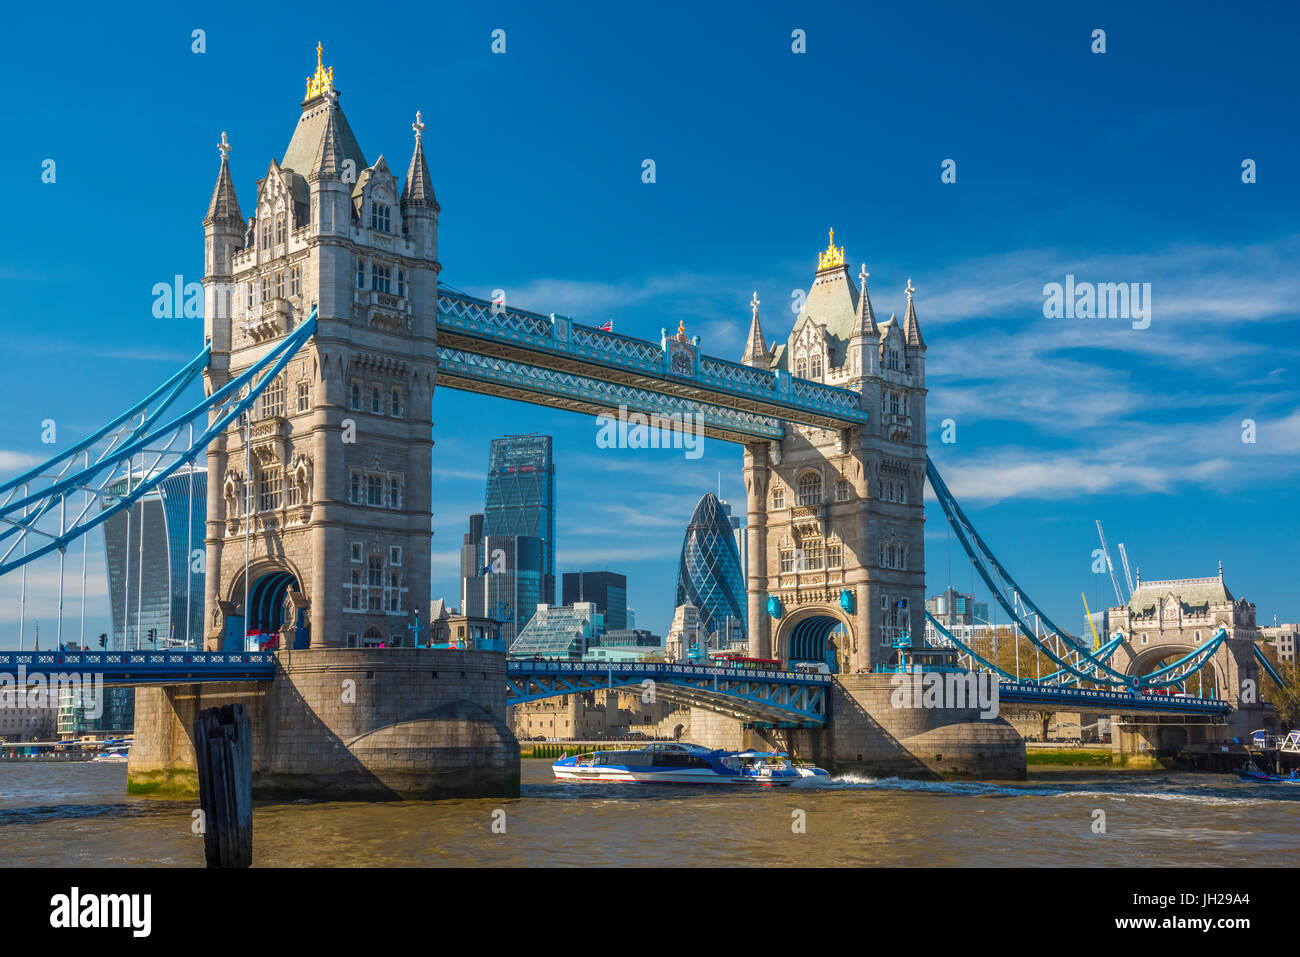 Tower Bridge over River Thames, City skyline including Cheesegrater and Gherkin skyscrapers beyond, London, England, - Stock Image